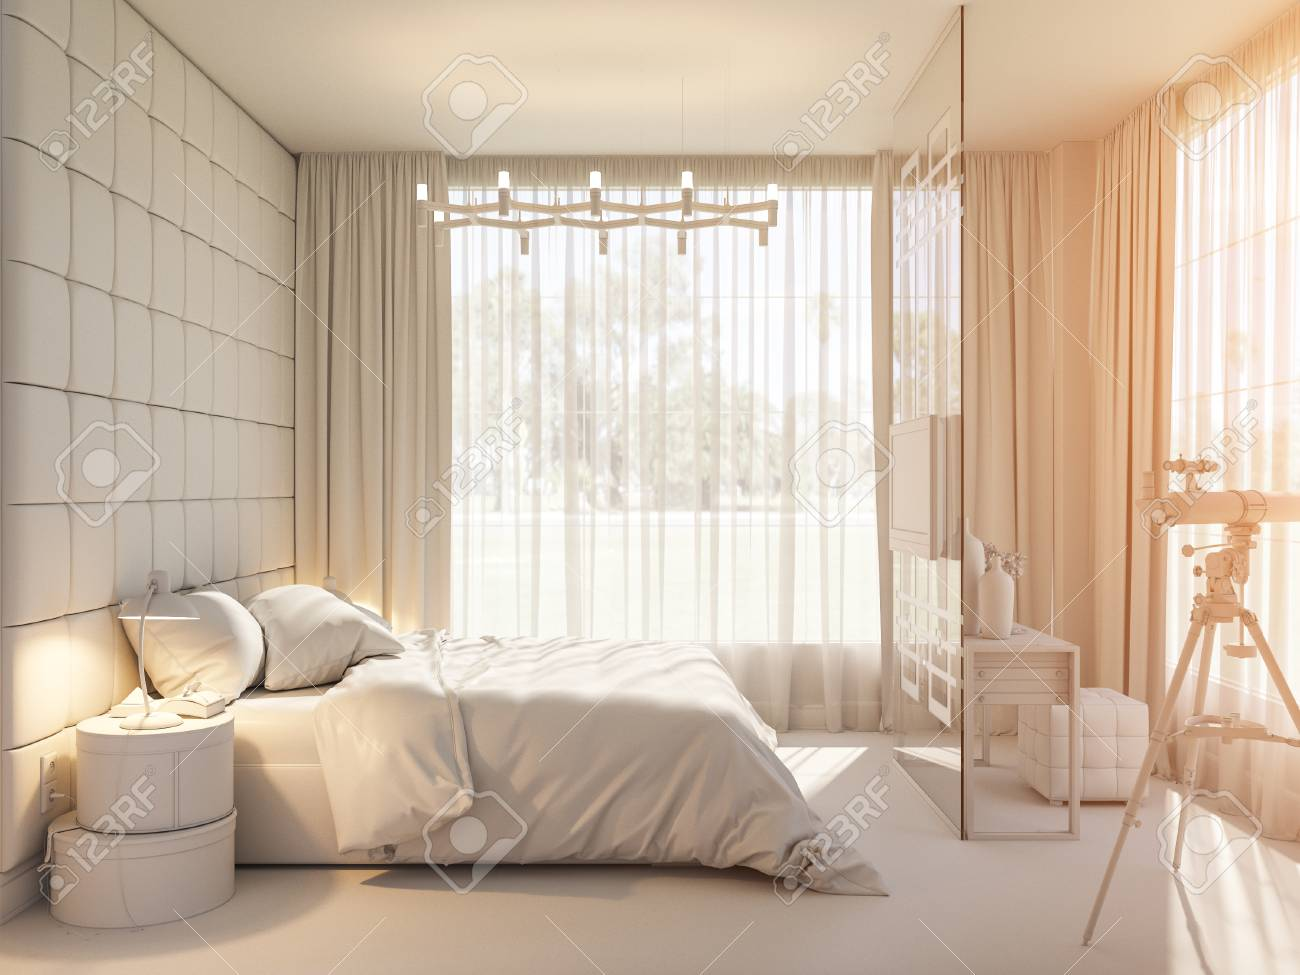 3d Illustration Of An Interior Design Of A Bedroom In Scandinavian Stock Photo Picture And Royalty Free Image Image 78225003